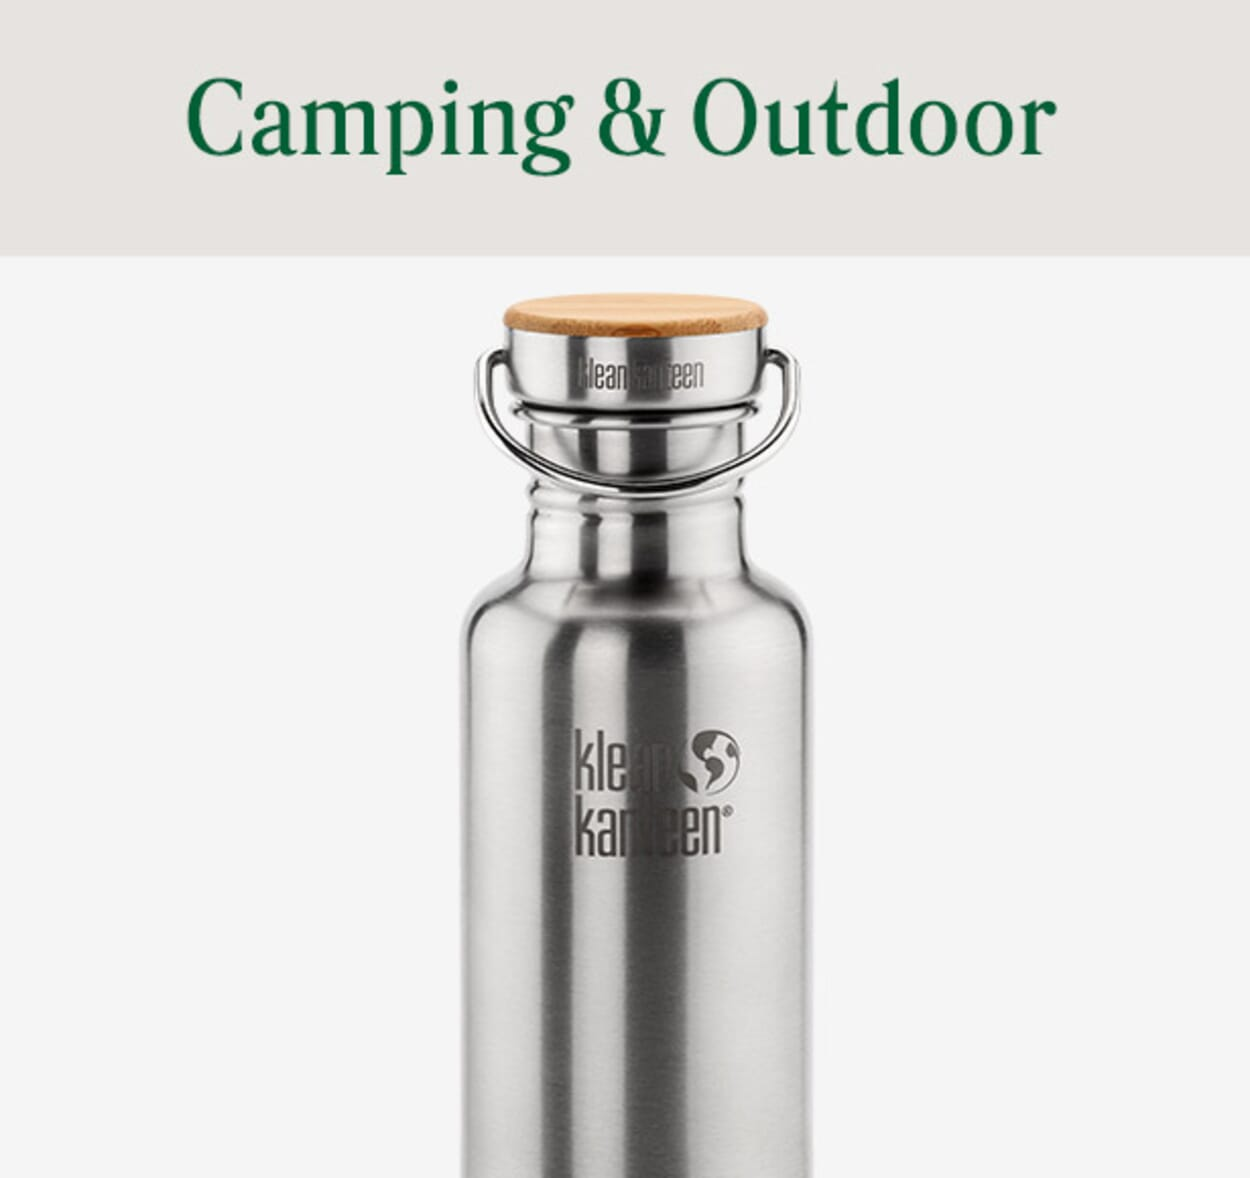 Camping & Outdoor